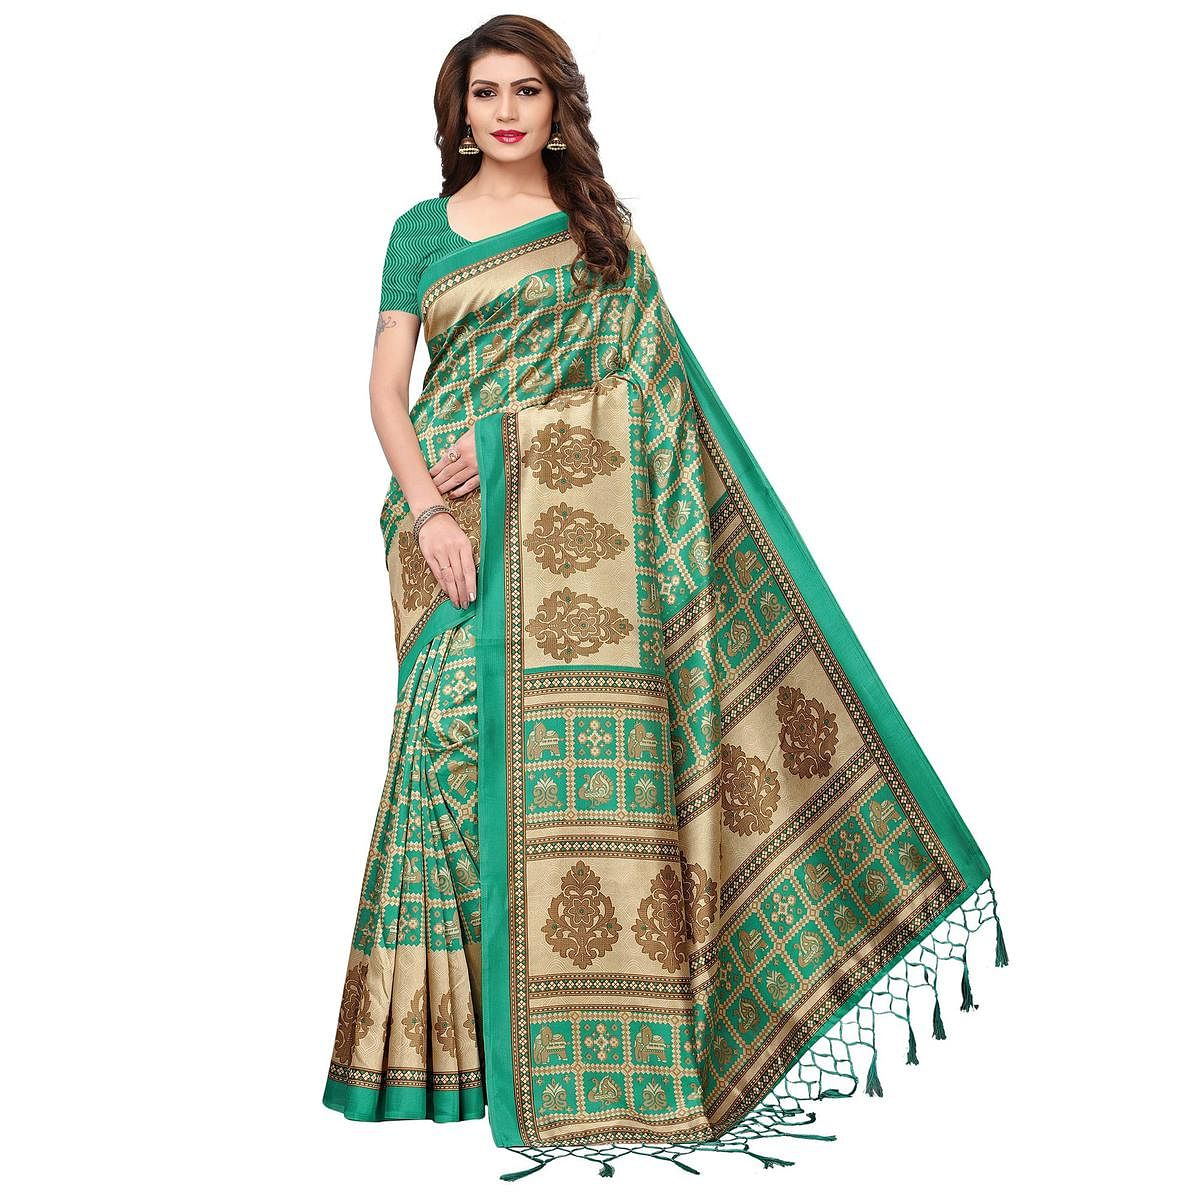 Preferable Green Colored Festive Wear Printed Mysore Silk Saree